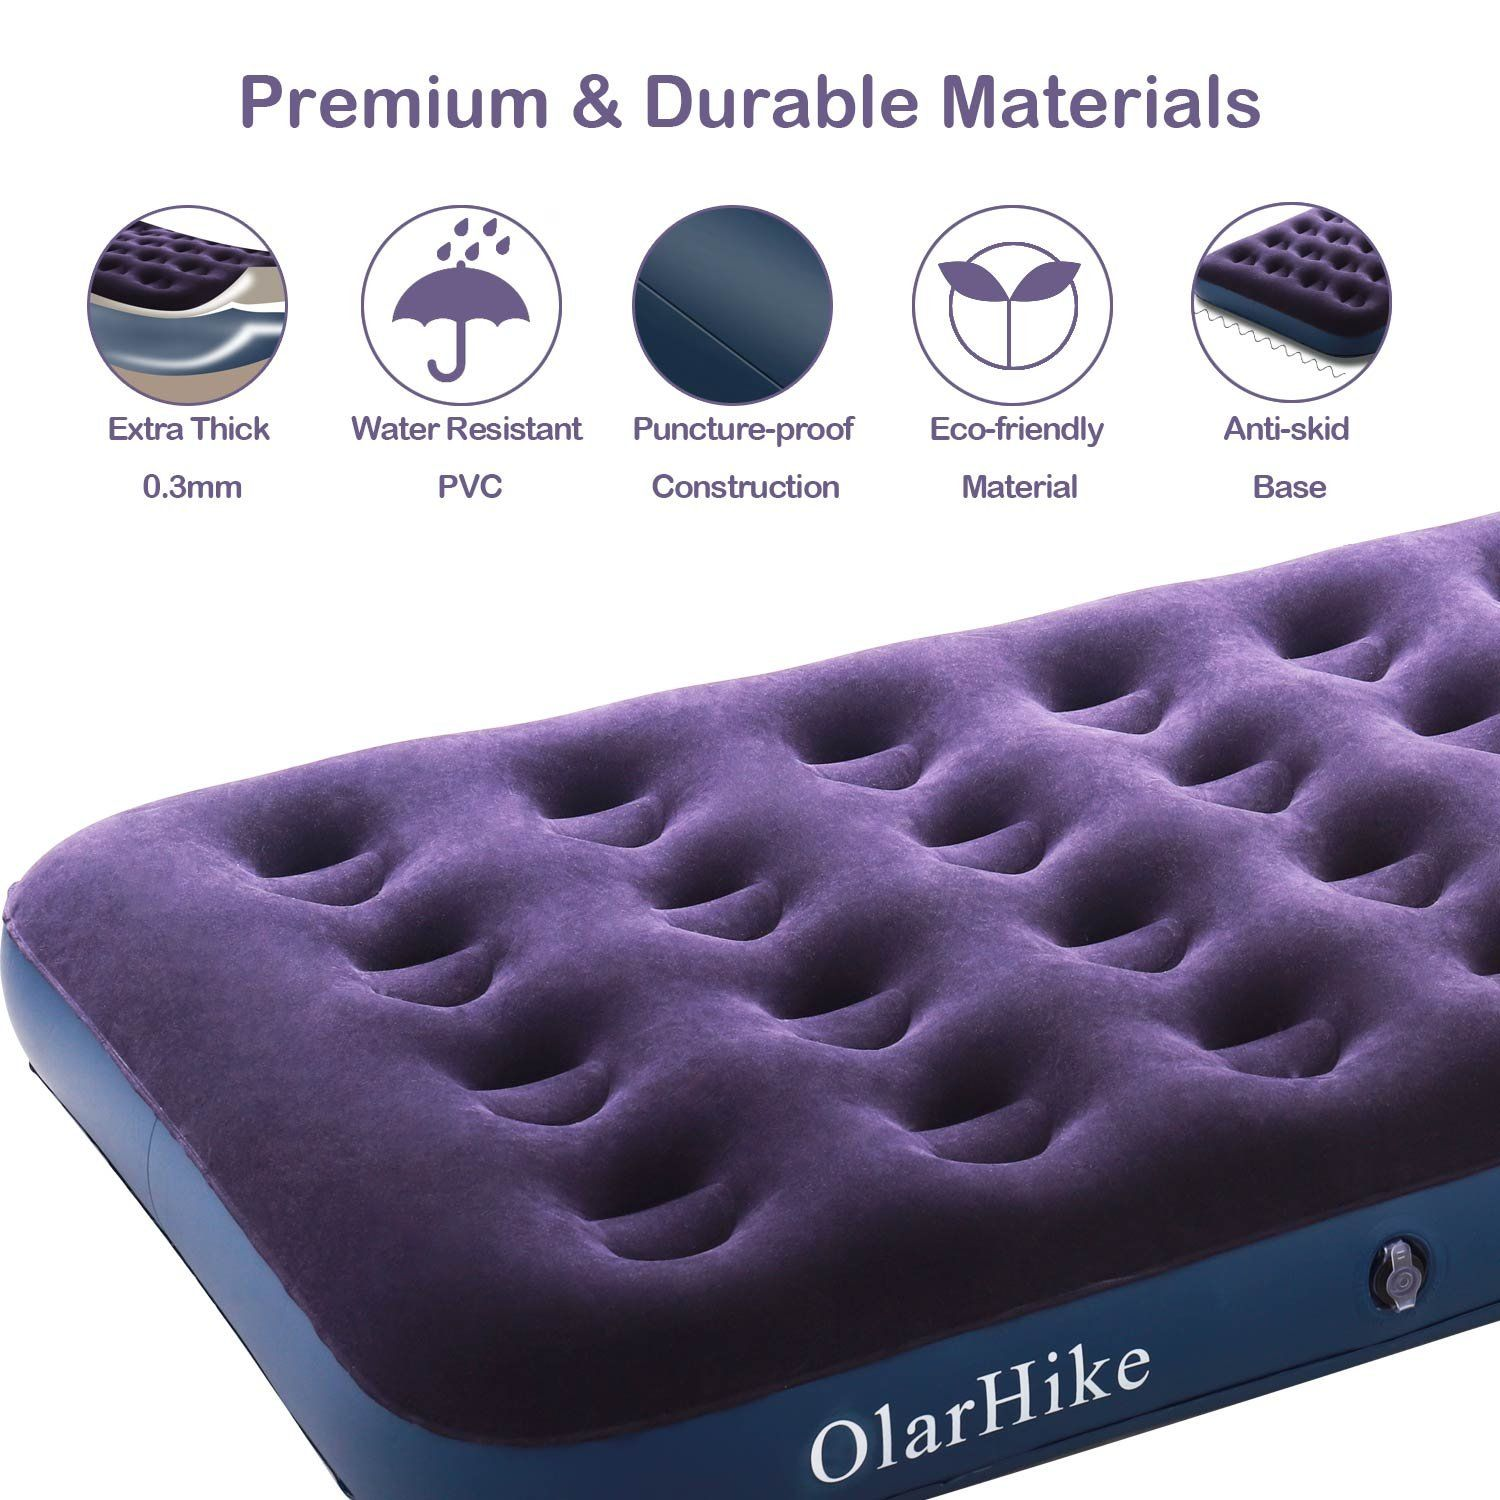 Olarhike Twin Air Mattress With Electric Pump Portable Air Bed Blow Up Mattress For Camping Car Repair Patches Pillow In In 2020 Twin Air Mattress Patch Pillow Air Bed